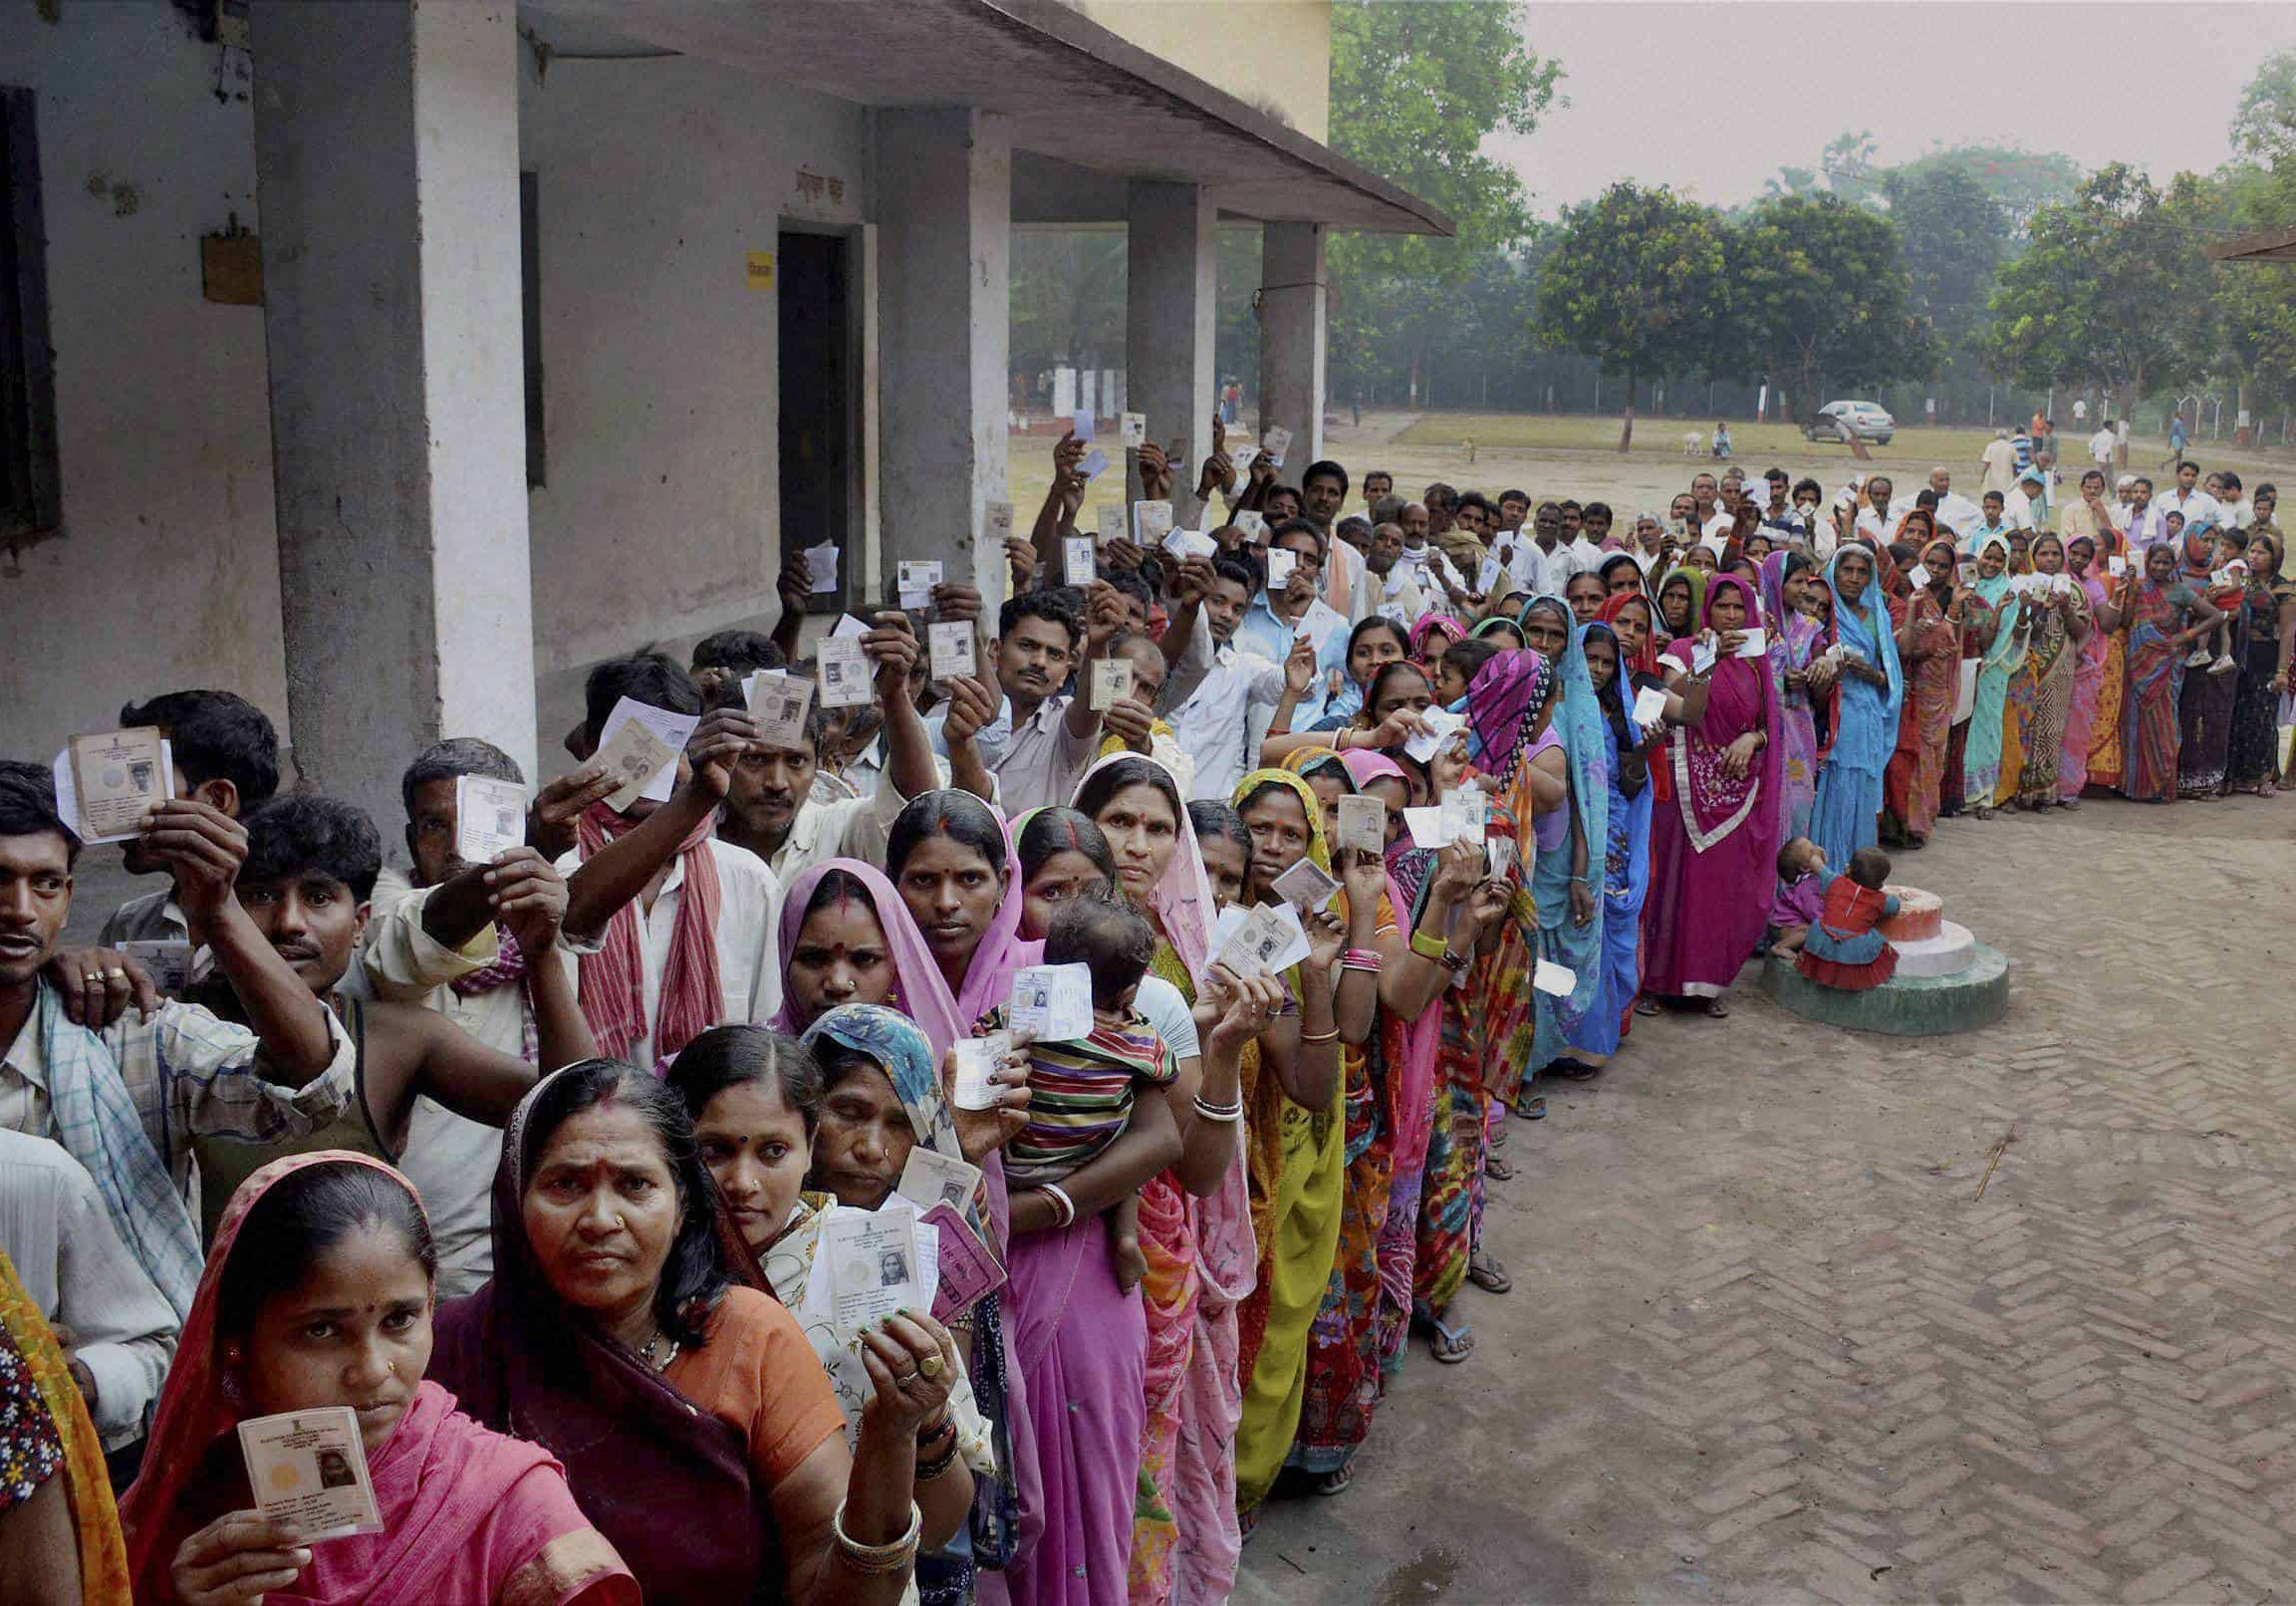 Hajipur: Voters stand in long queues to cast their votes for Lok Sabha polls at a polling station in Hajipur on Wednesday. PTI Photo(PTI5_7_2014_000093B)